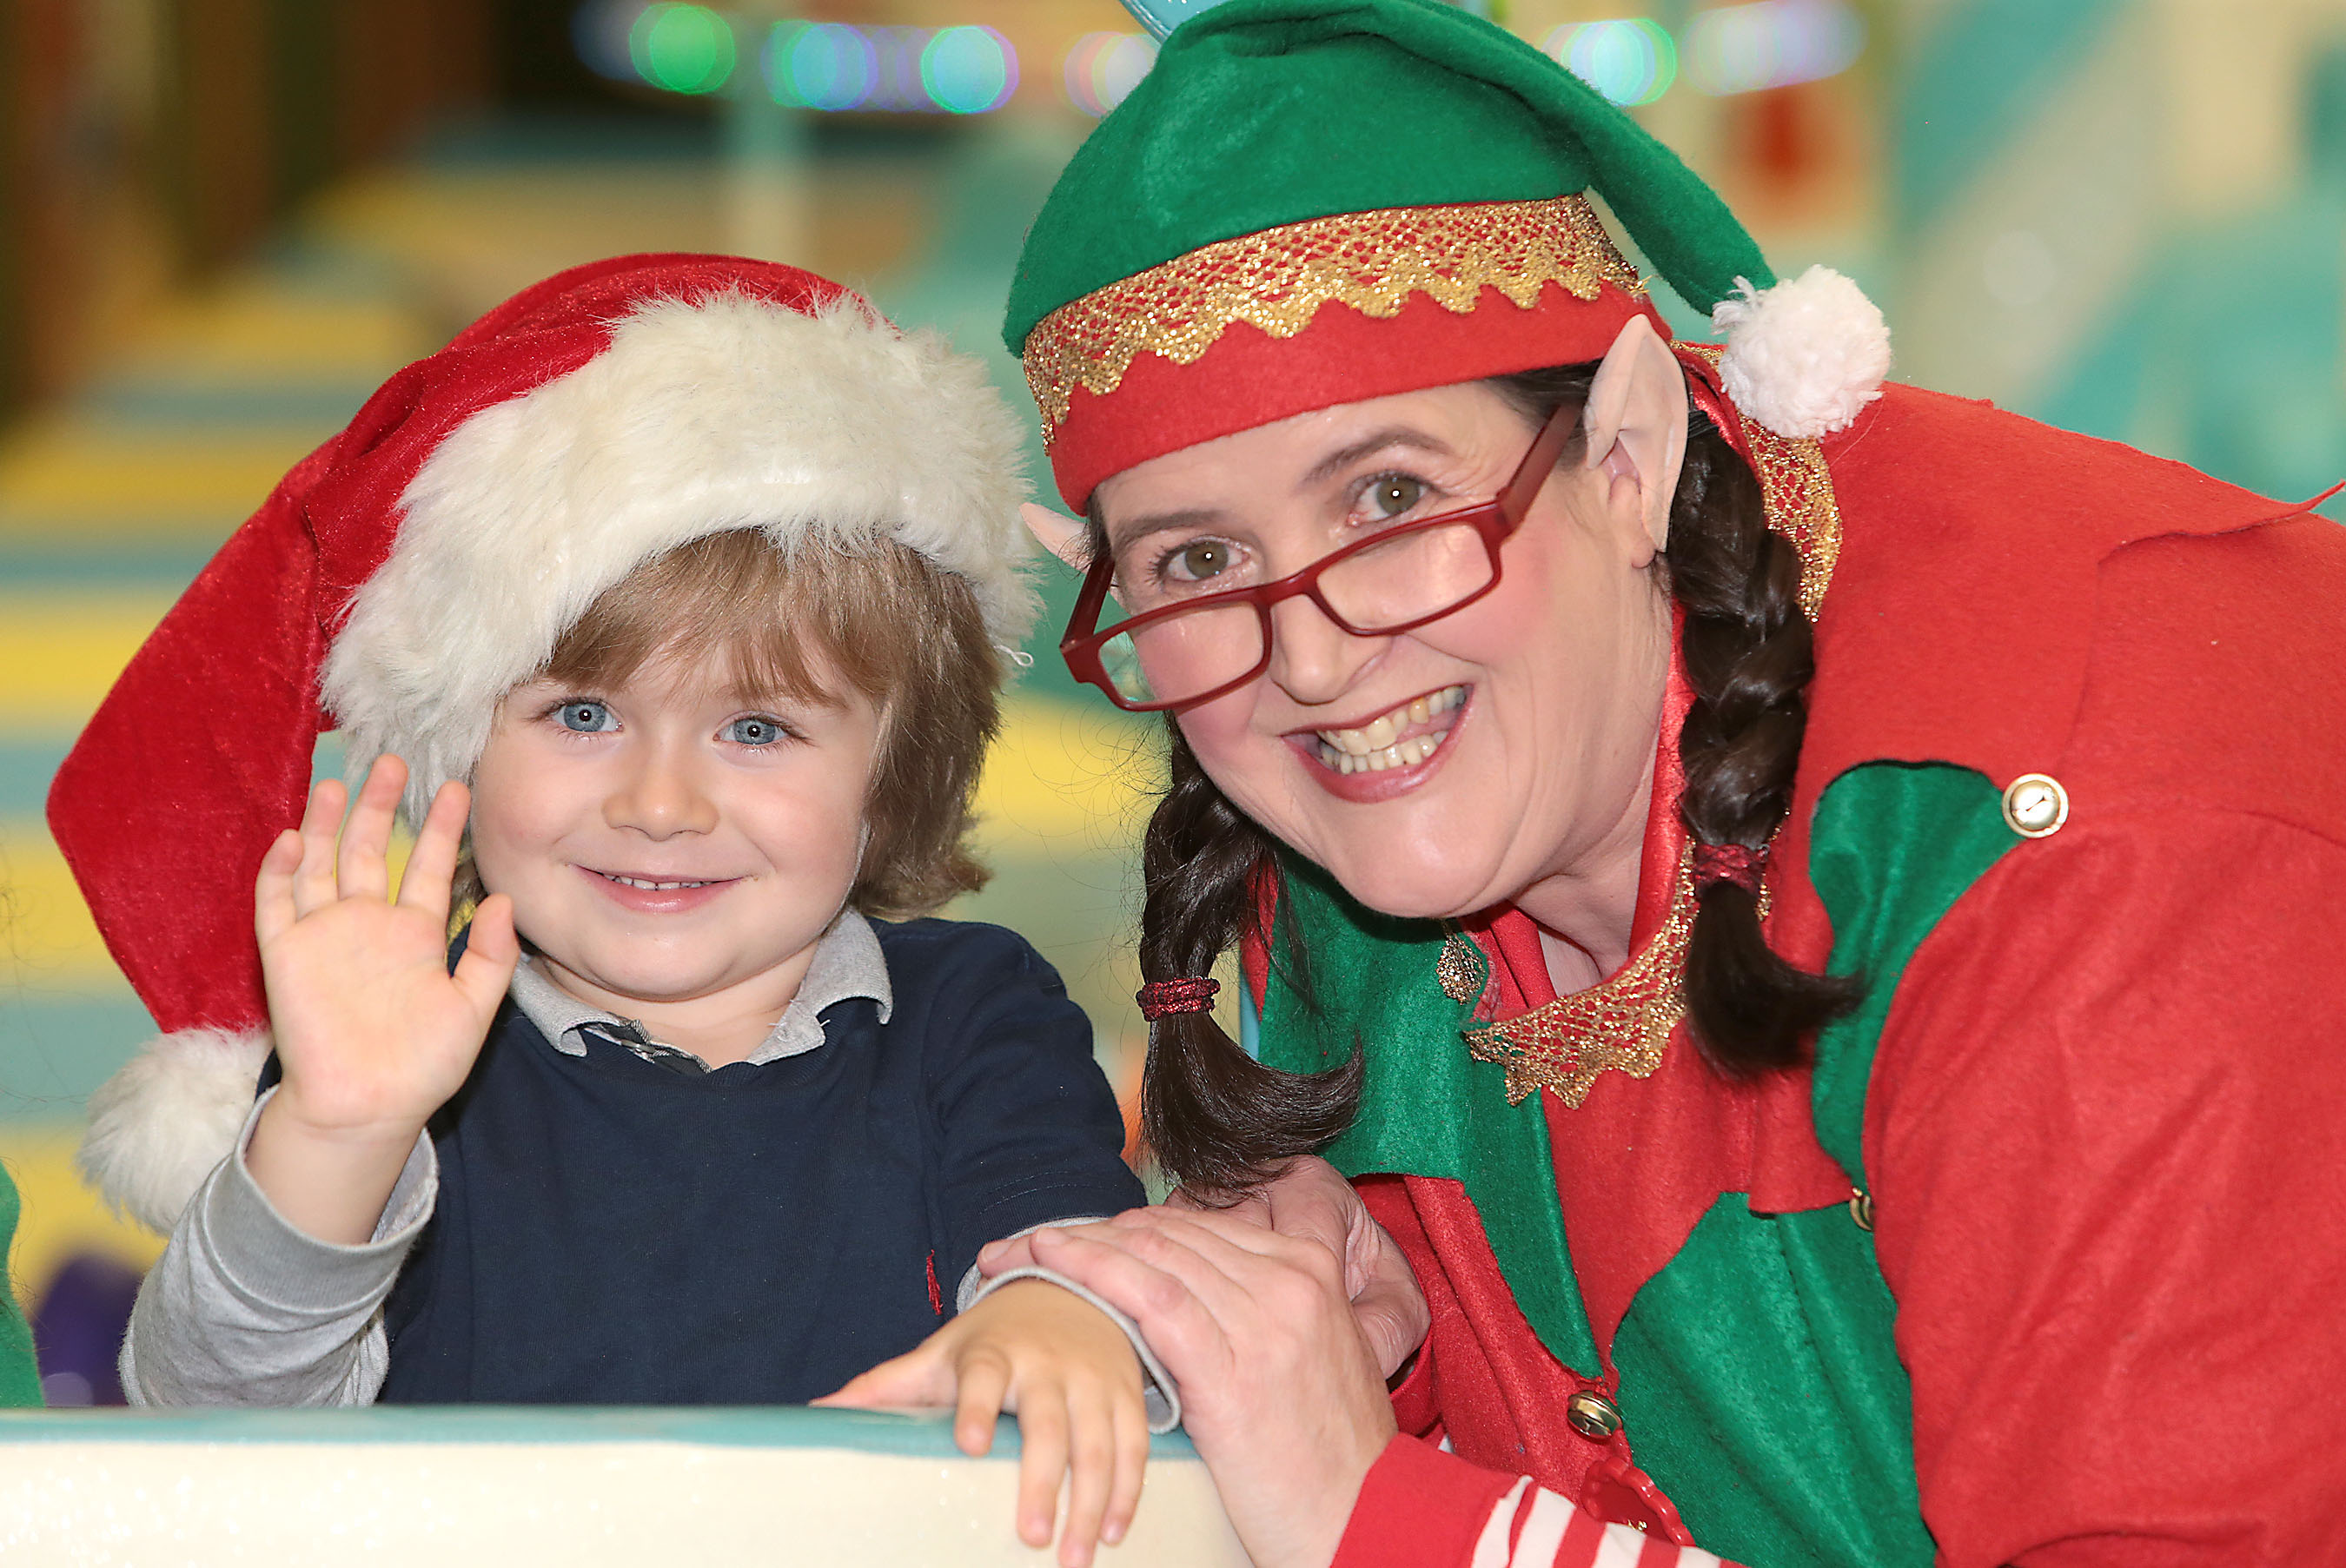 Twitter sensation Theo Horan, four-year old nephew of Niall Horan pictured with  elve Maeve Kerrigan aka Spinners O'Shaughnessy announcing details of  Santa's Cove in Liffey Valley Shopping Centre Dublin.  The ultimate magical Santa experience boasting the top of the range and exclusive Naughty or Nice Machine which opens on 19th November 2017. For more info check out : www.santascove.eu Picture Brian McEvoy No repro fee for one use   Theo was joined by elve Maeve Kerrigan aka Spinners O'Shaughnessy and children from a local Irish Autism Action group who will be among the first visitors to enjoy one of the exclusive sensory sessions for children with special needs at Santa's Cove when it opens on 19th November 2017. Advance booking is advised see www.santascove.eu     Santa's Cove at Liffey Valley promises to be the 'Naughty or Nice' Christmas experience of 2017. As the world's population grows bigger and bigger, Santa's elves are under increasing pressure to make more innovative and interesting toys and decorations for children each Christmas. After months of searching the globe high and low, Santa's most trusted helpers Fidget McPhee and Spinners O'Shaughnessy have found the perfect location for Santa's Cove, an enchanted wonderland where children can help create toys. They'll also get the opportunity to meet Santa and find out how good they've been this year thanks to a marvellous invention, the 'Naughty or Nice Machine' which will be located exclusively at Liffey Valley, Dublin from Sunday 19th November to 24th December 2017.